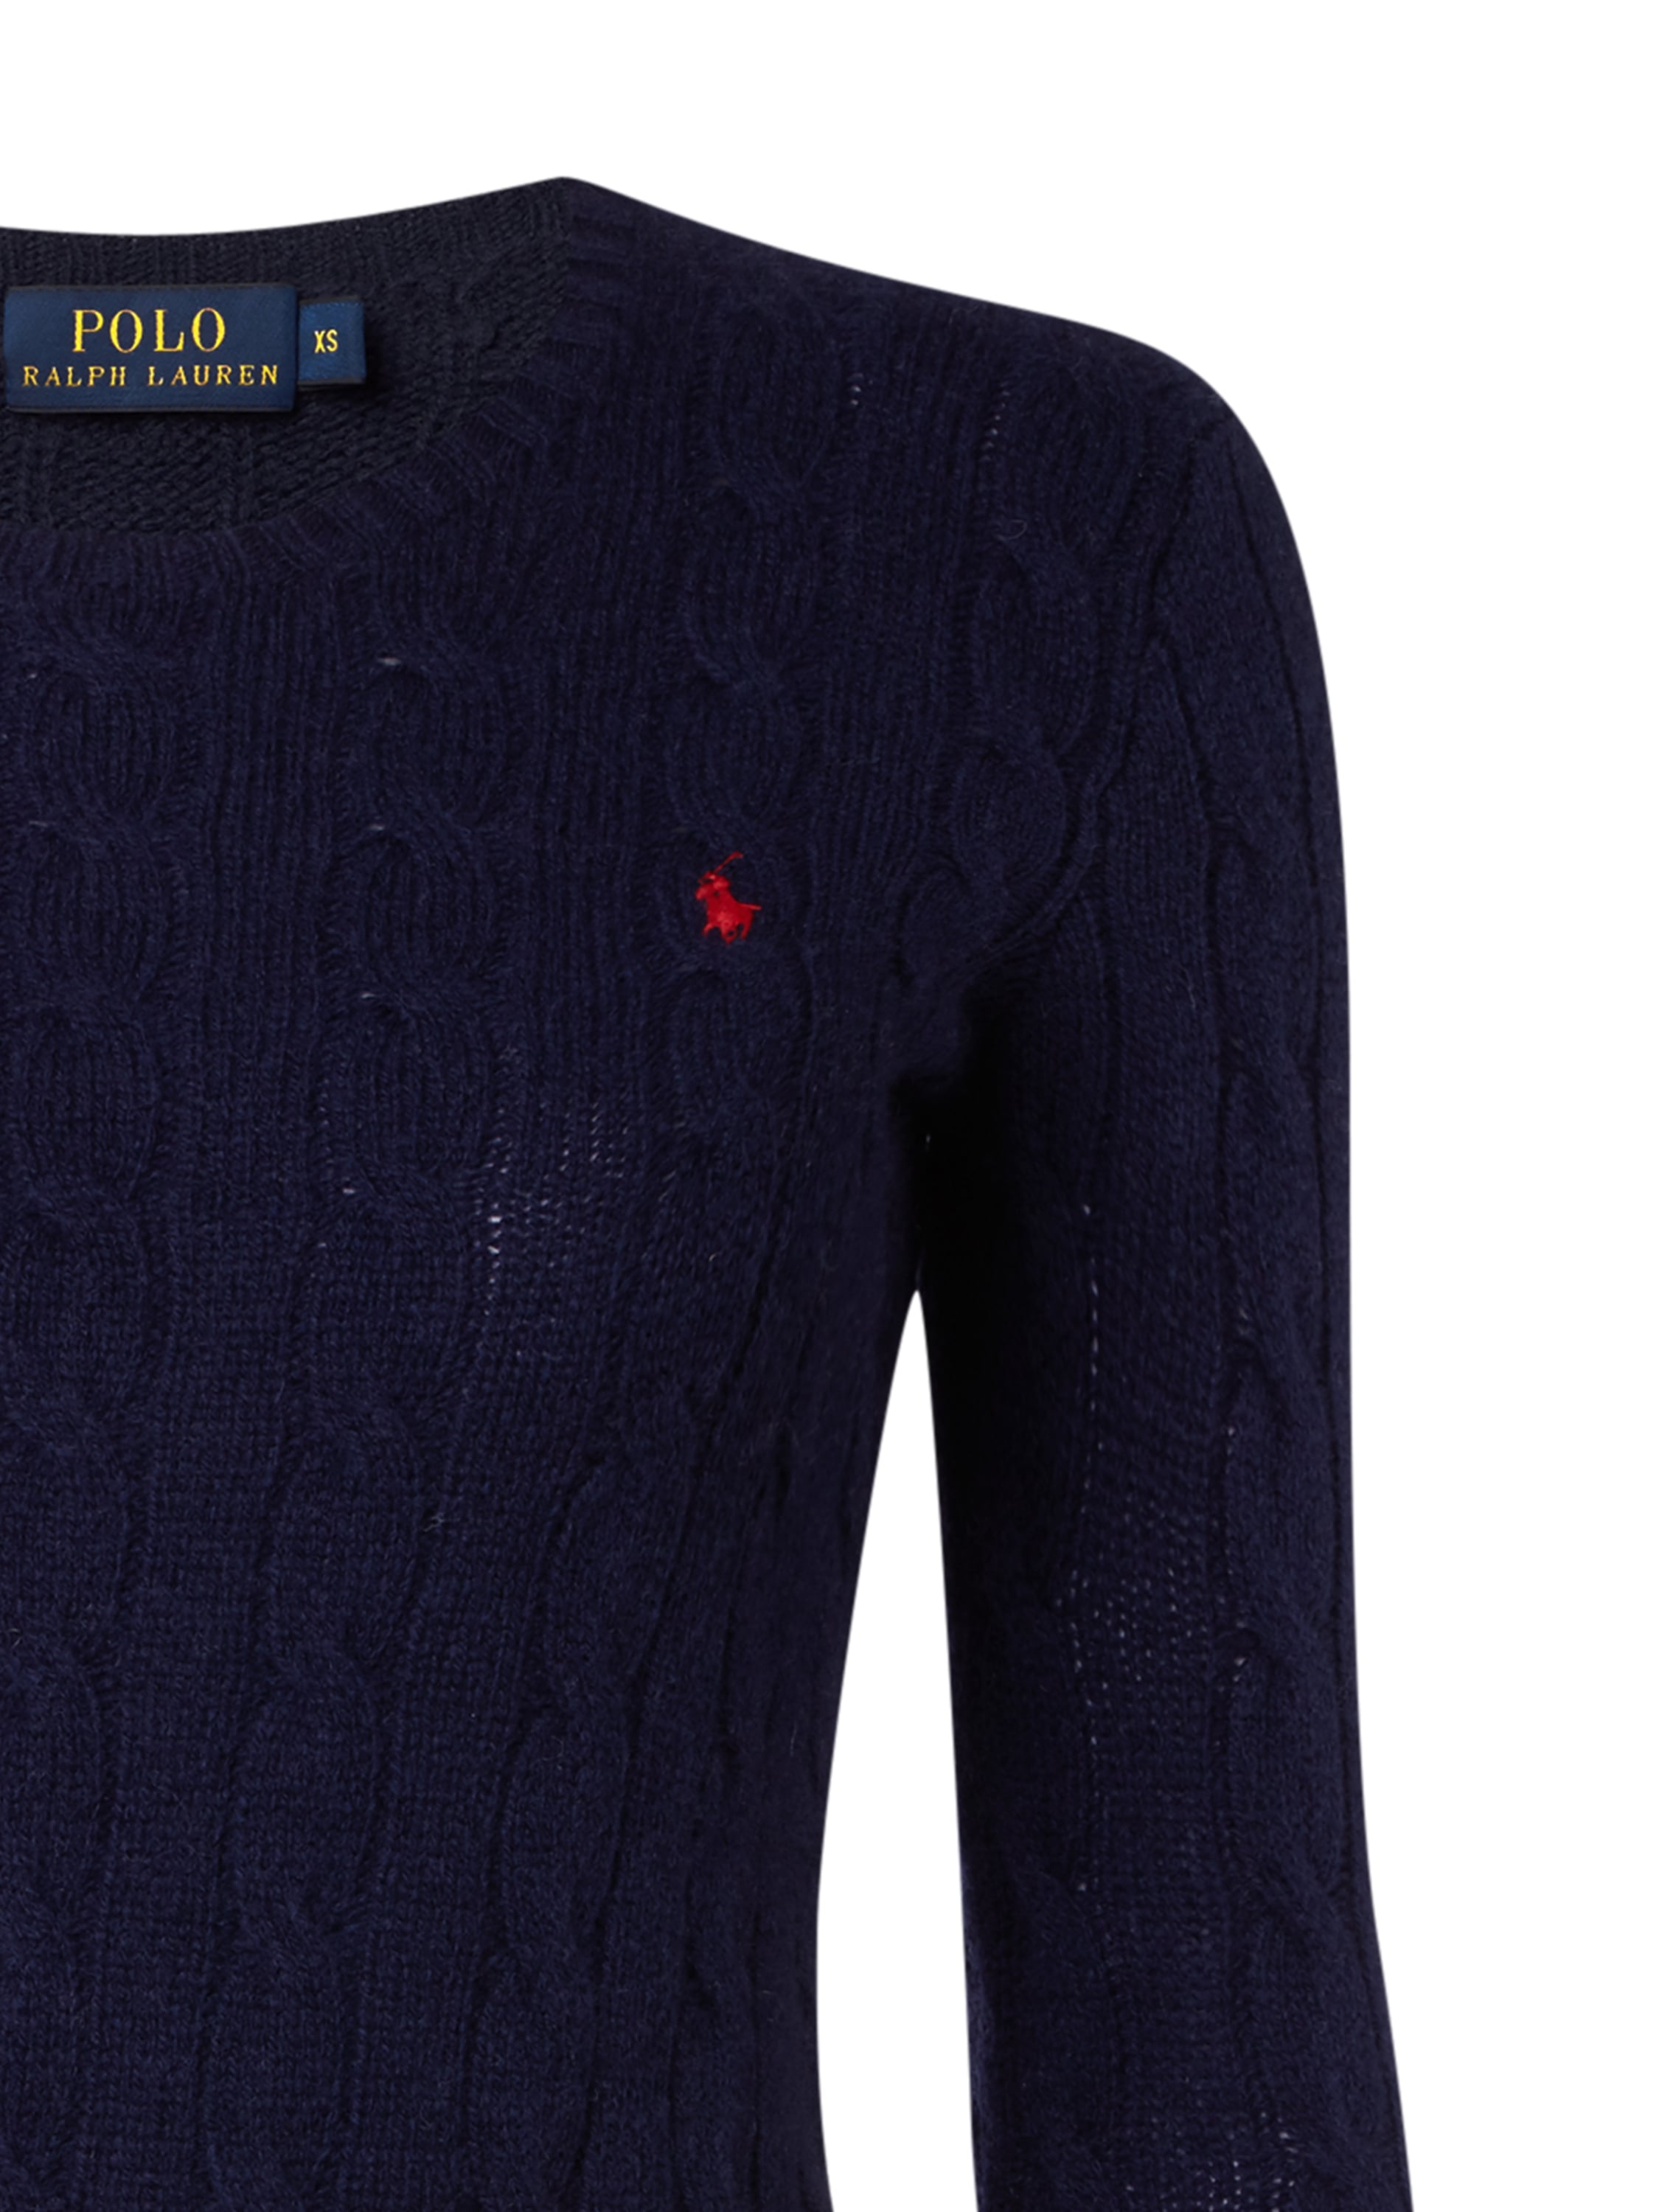 polo ralph lauren pullover mit kaschmir anteil in blau t rkis. Black Bedroom Furniture Sets. Home Design Ideas